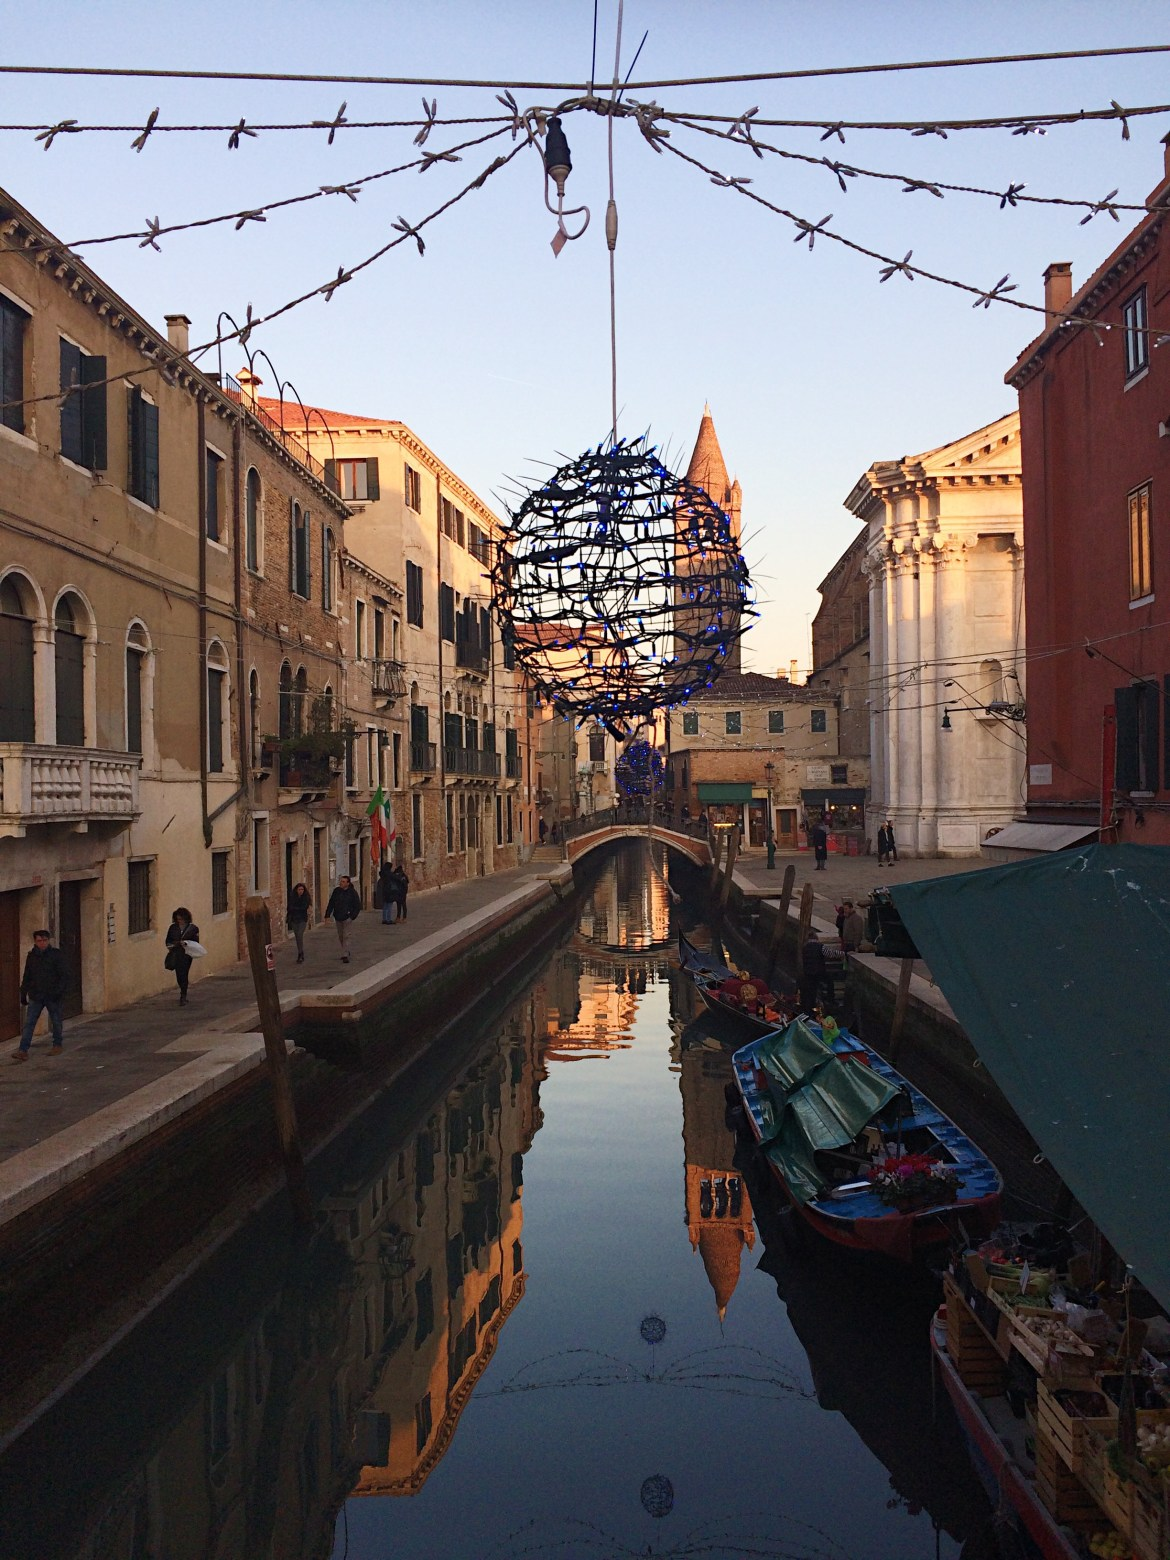 Venice at Christmas, Winter in Italy